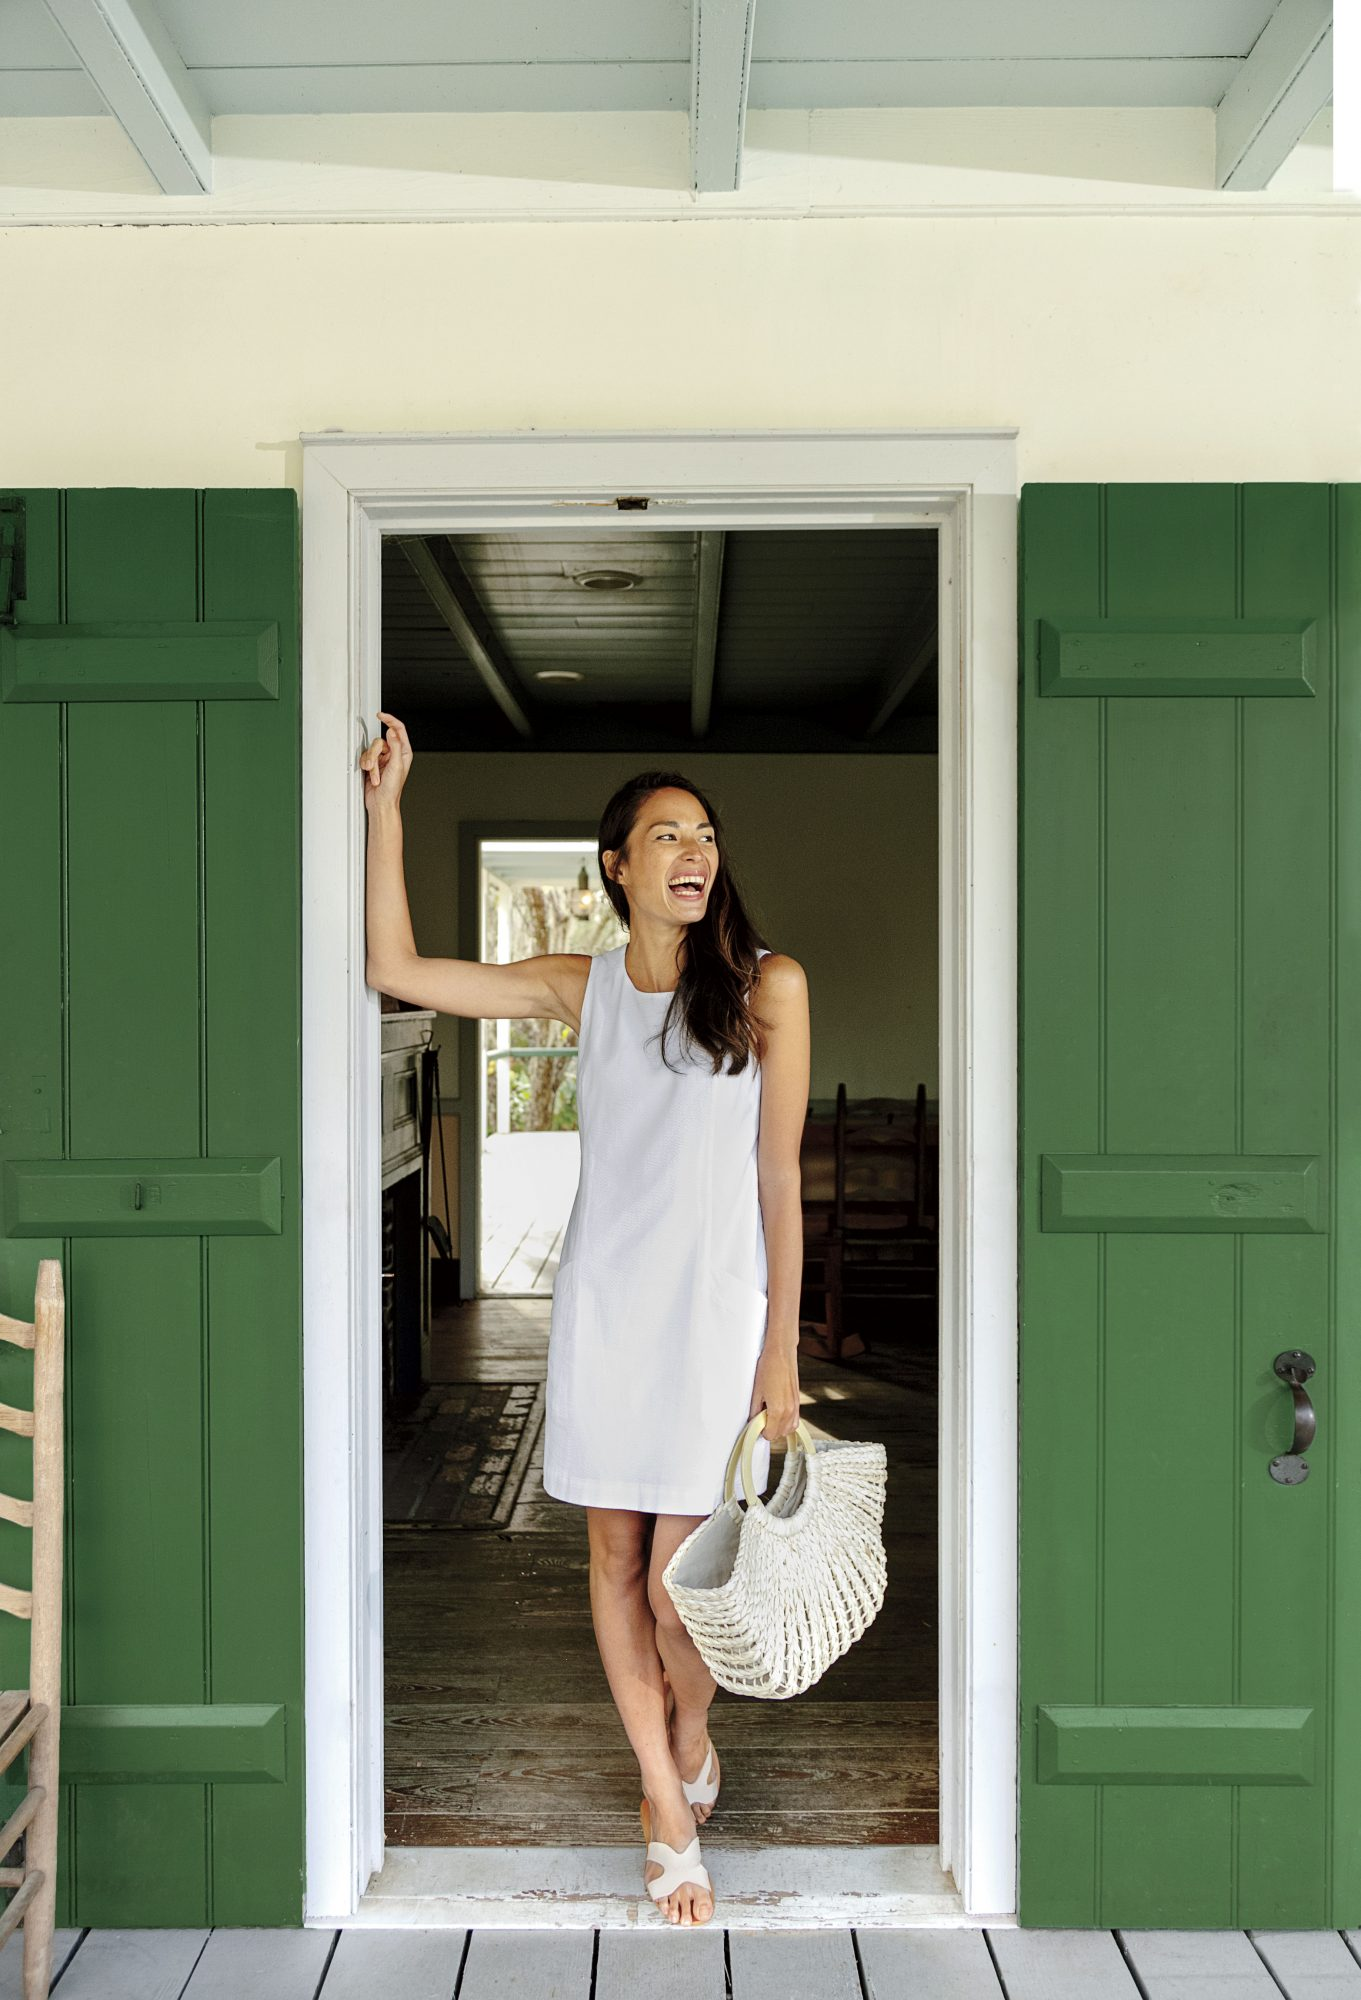 Southern Tide White Seersucker Dress